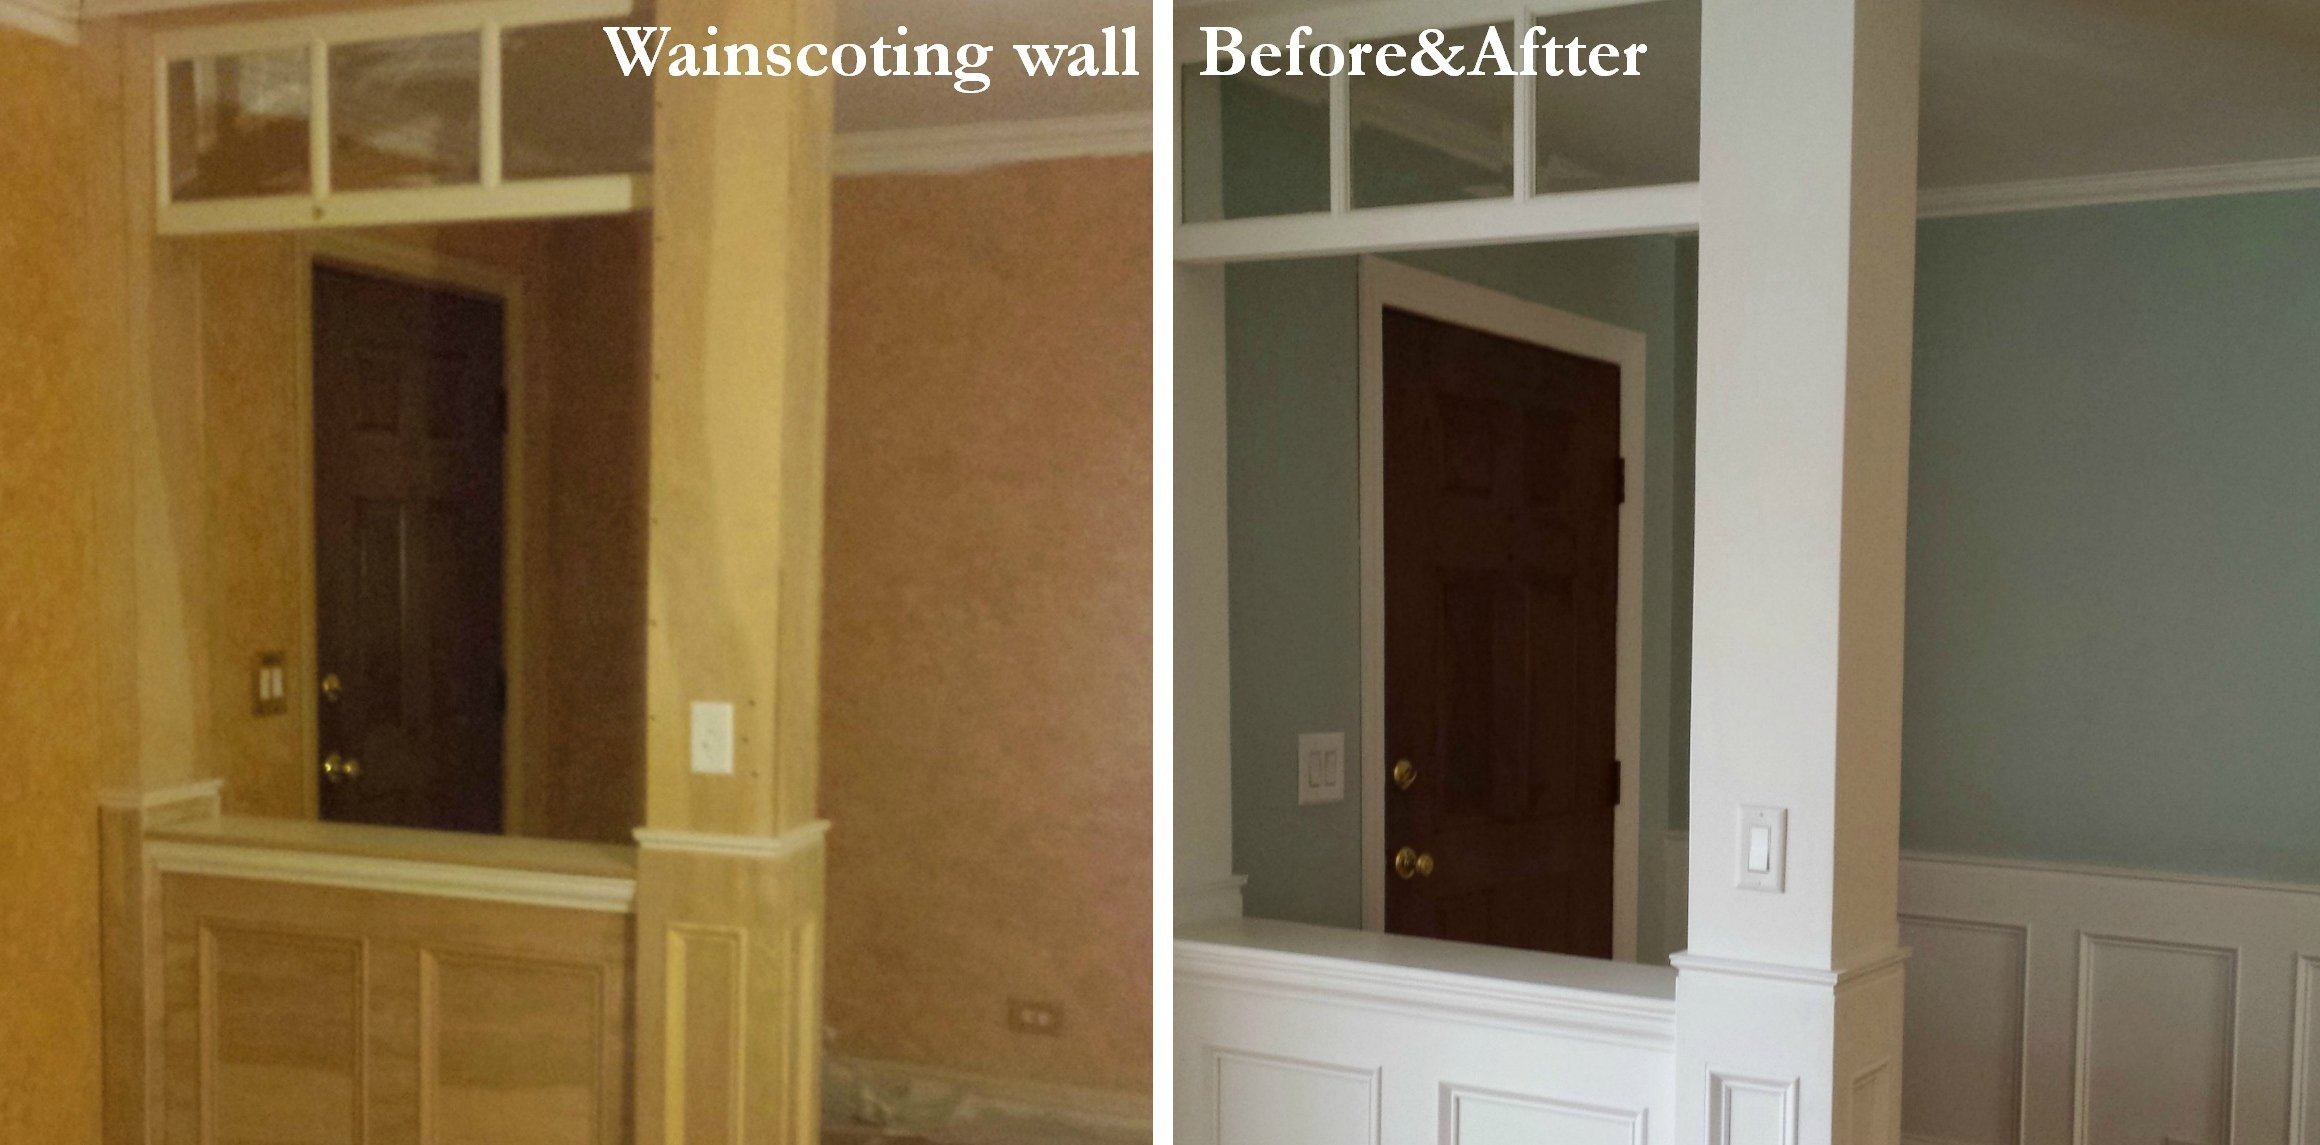 Wainscoting wall Before and After - Housekaboodle & How To Make a Recessed Wainscoting Wall From Scratch